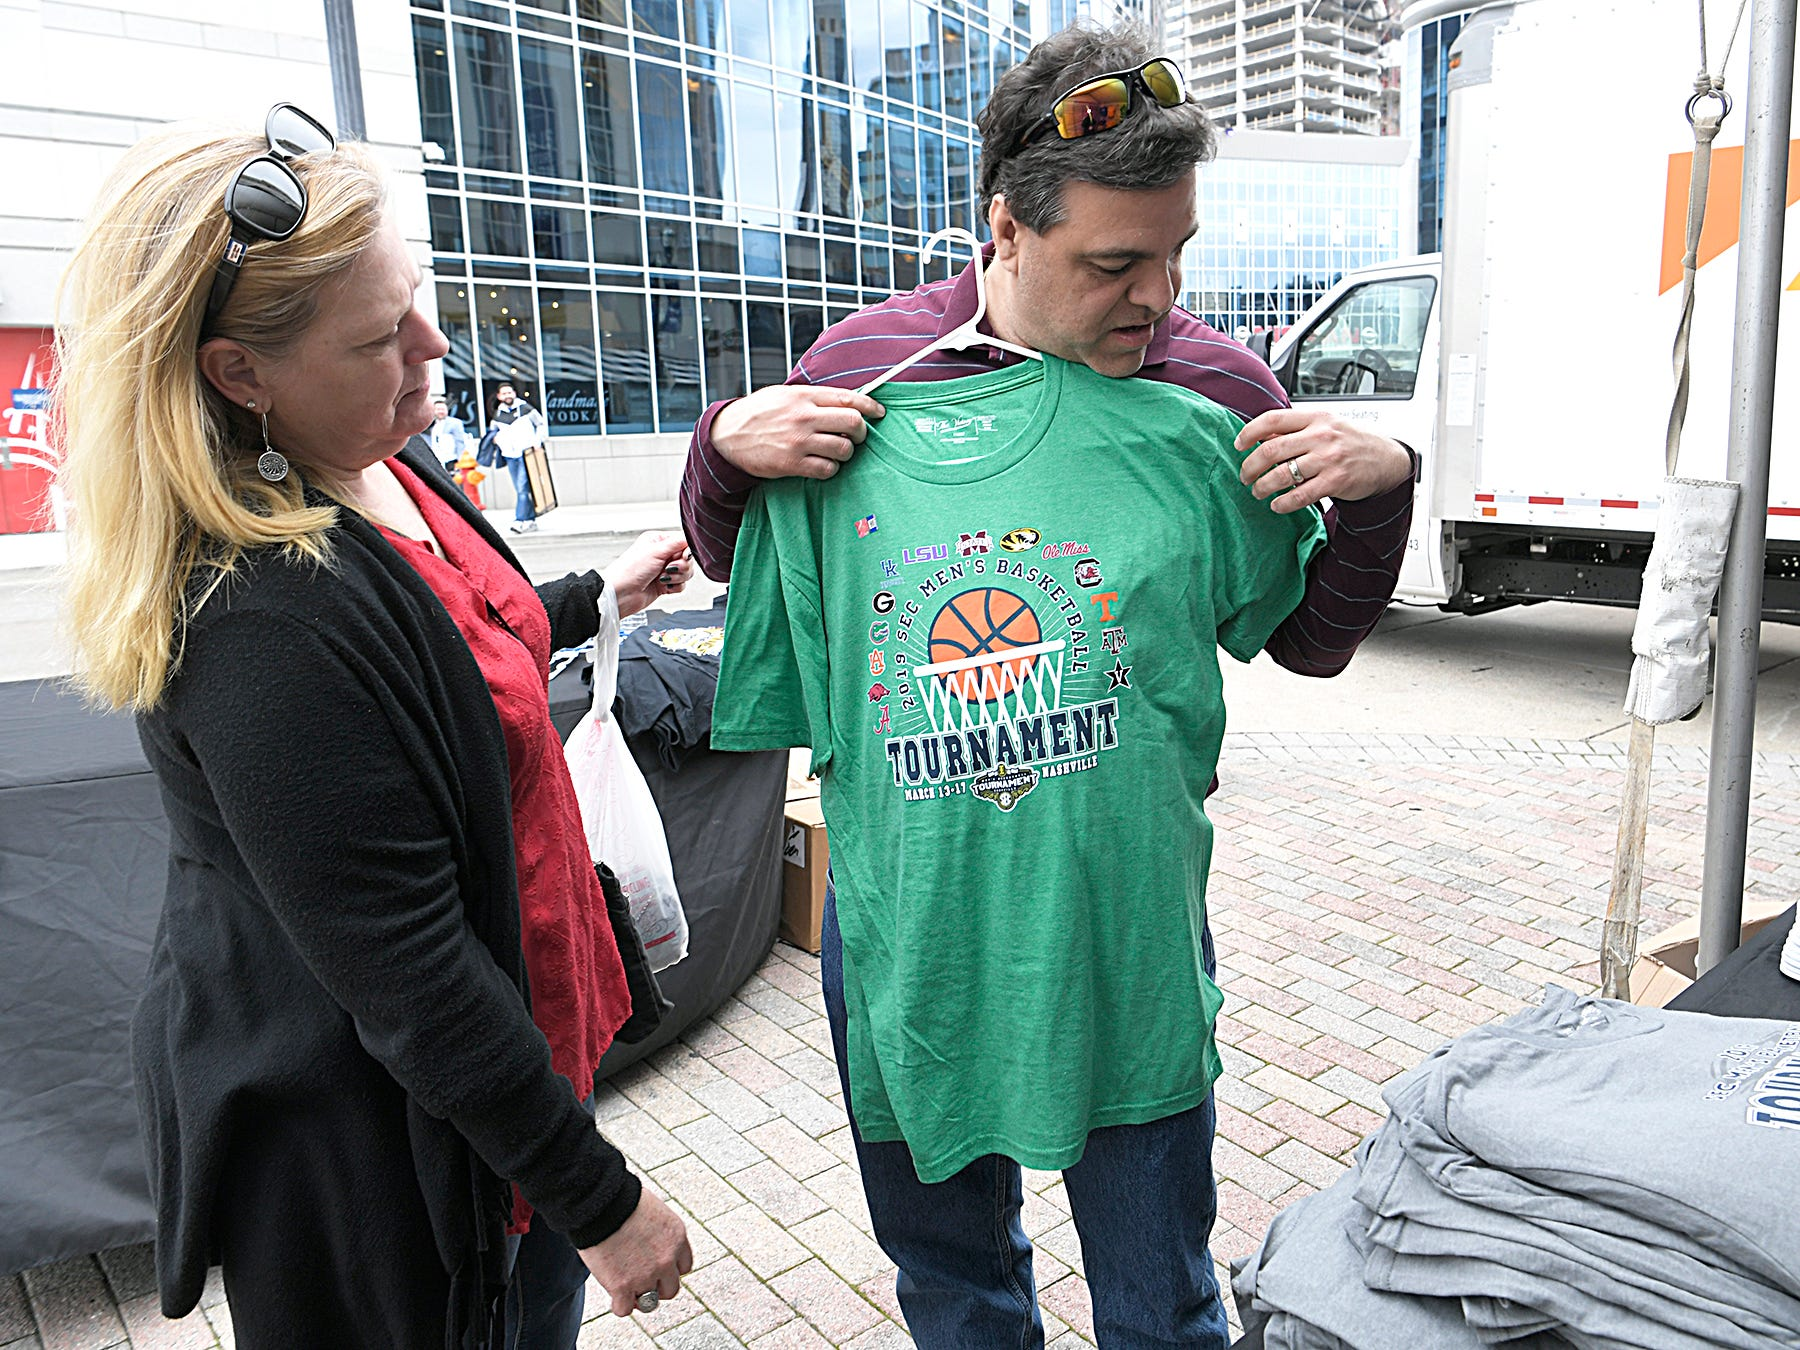 Lisa and Ed Alverez of Georgia purchase a SEC Men's Basketball Tournament T-shirt in downtown Nashville on Wednesday, March 13, 2019. The couple is not attending the tournament but they are Georgia fans.